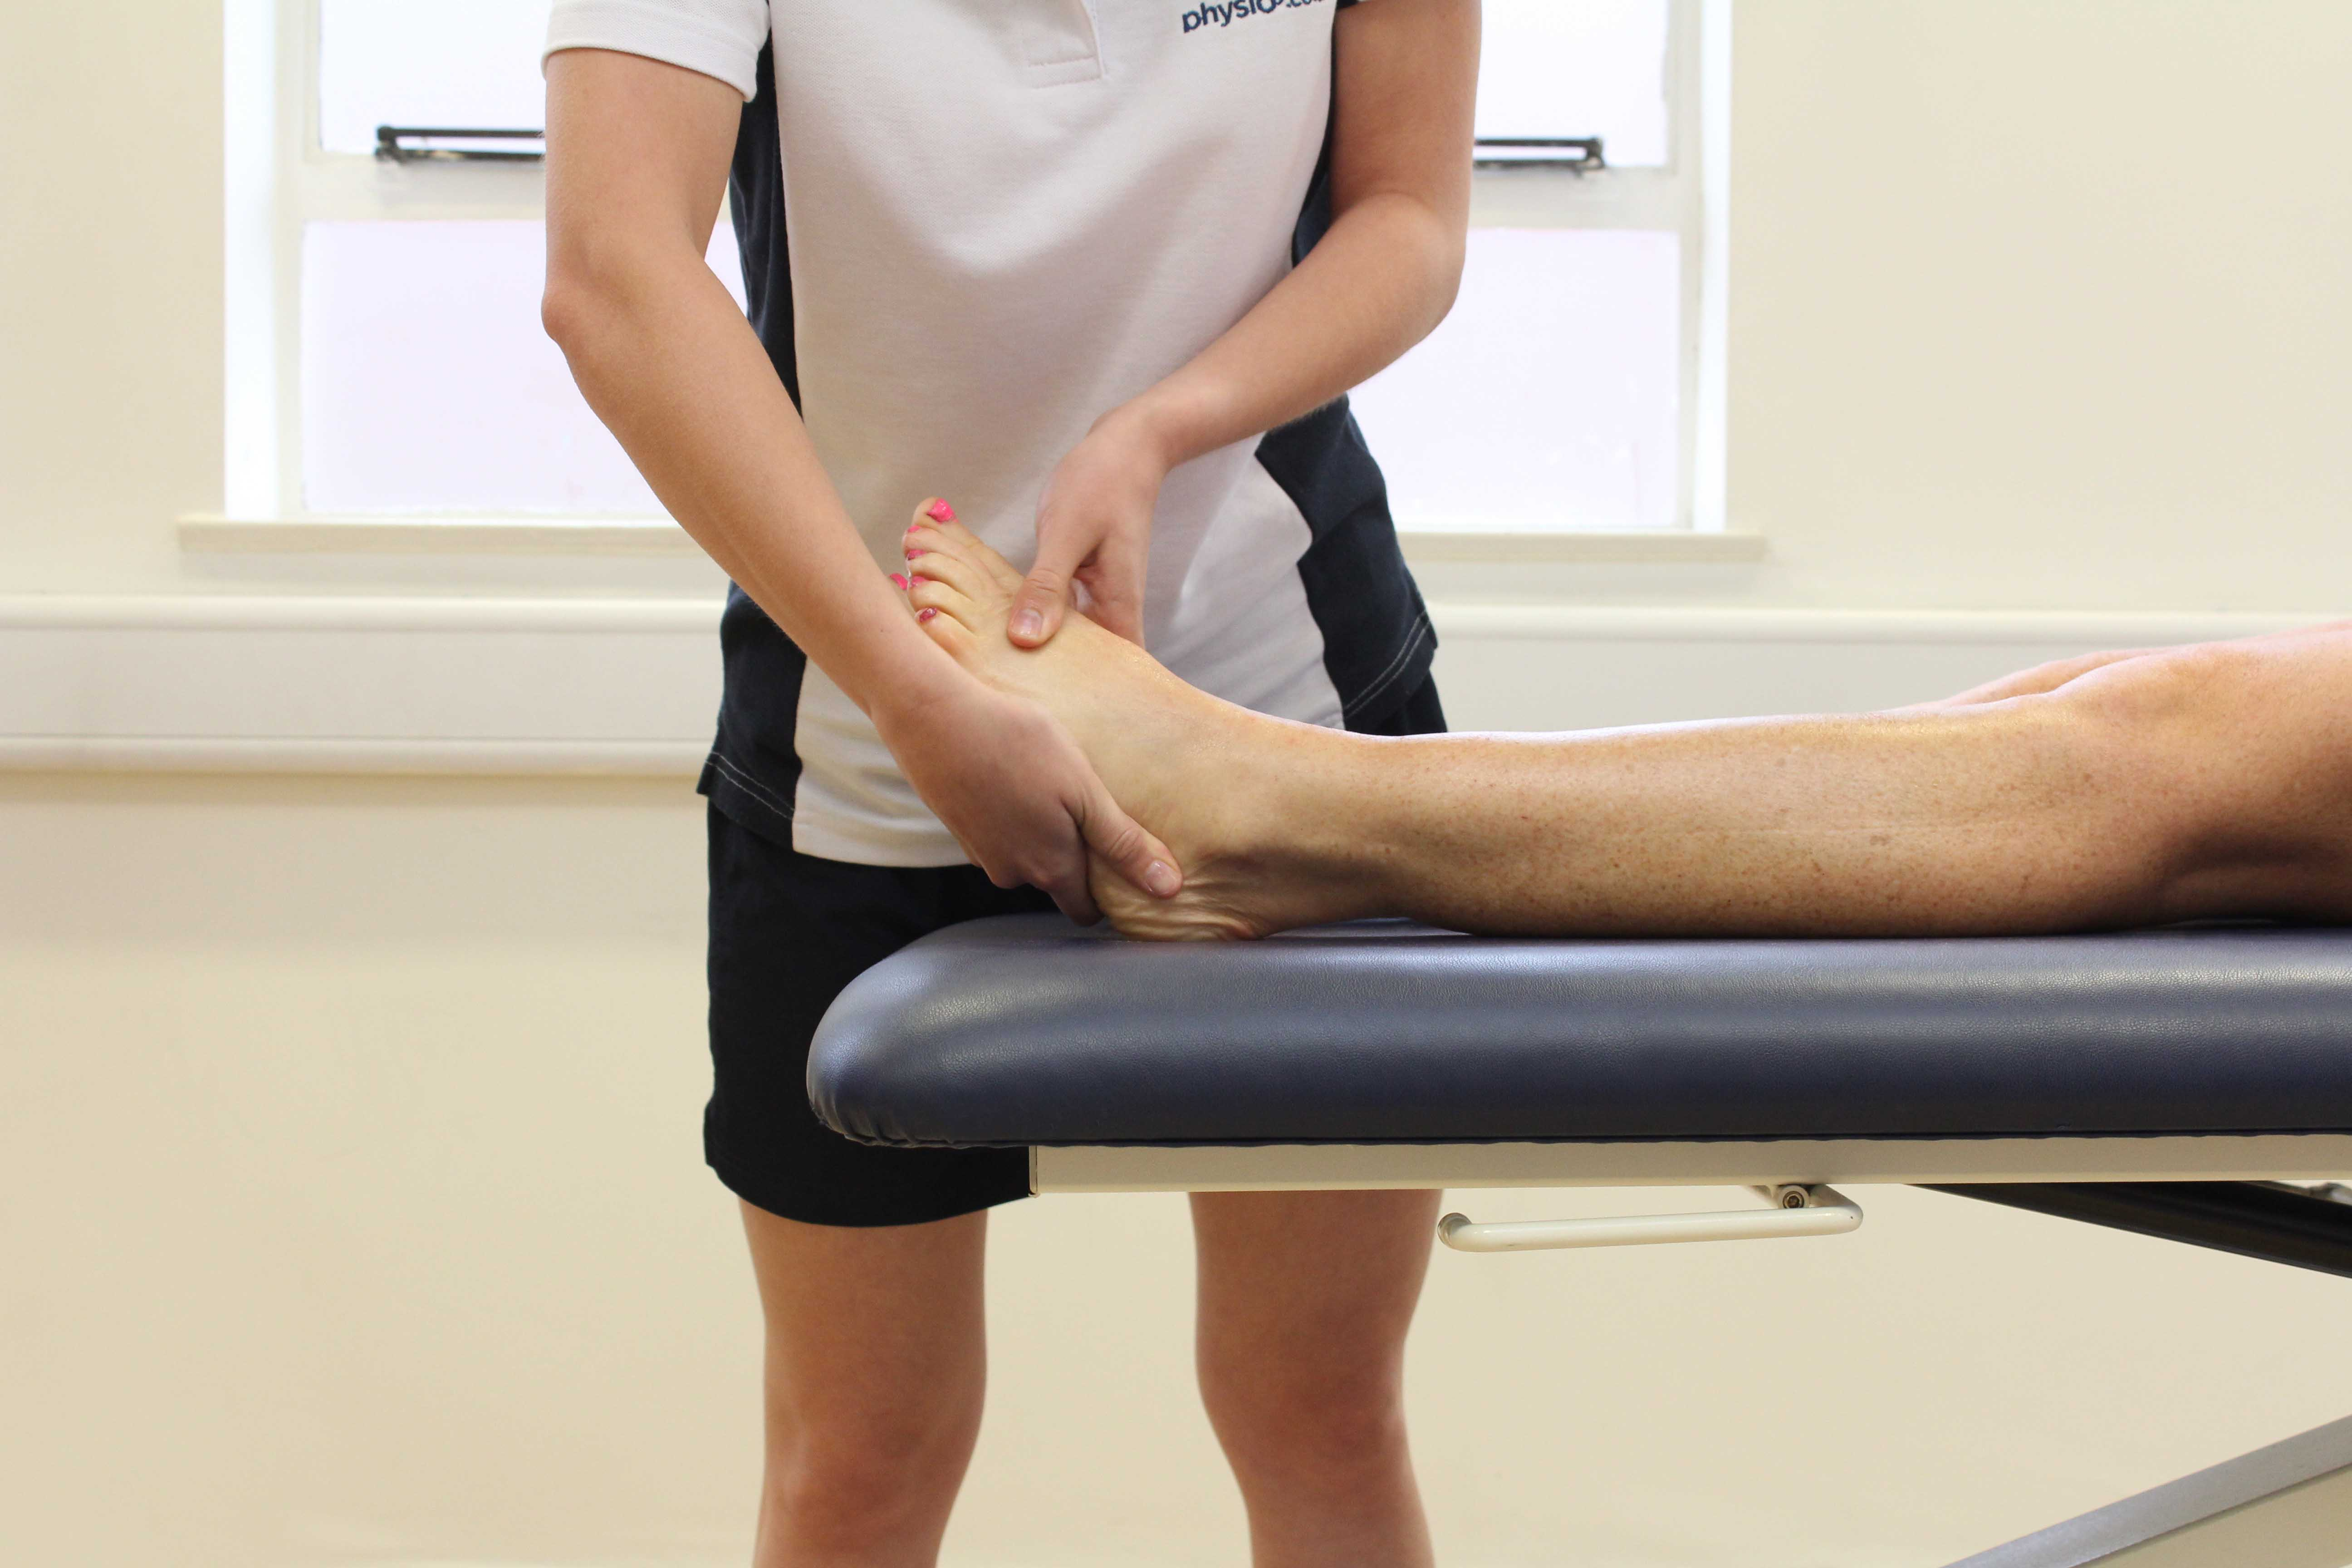 Soft tissue massage applied to the bones and connective tissue on the anterior portion of the foot